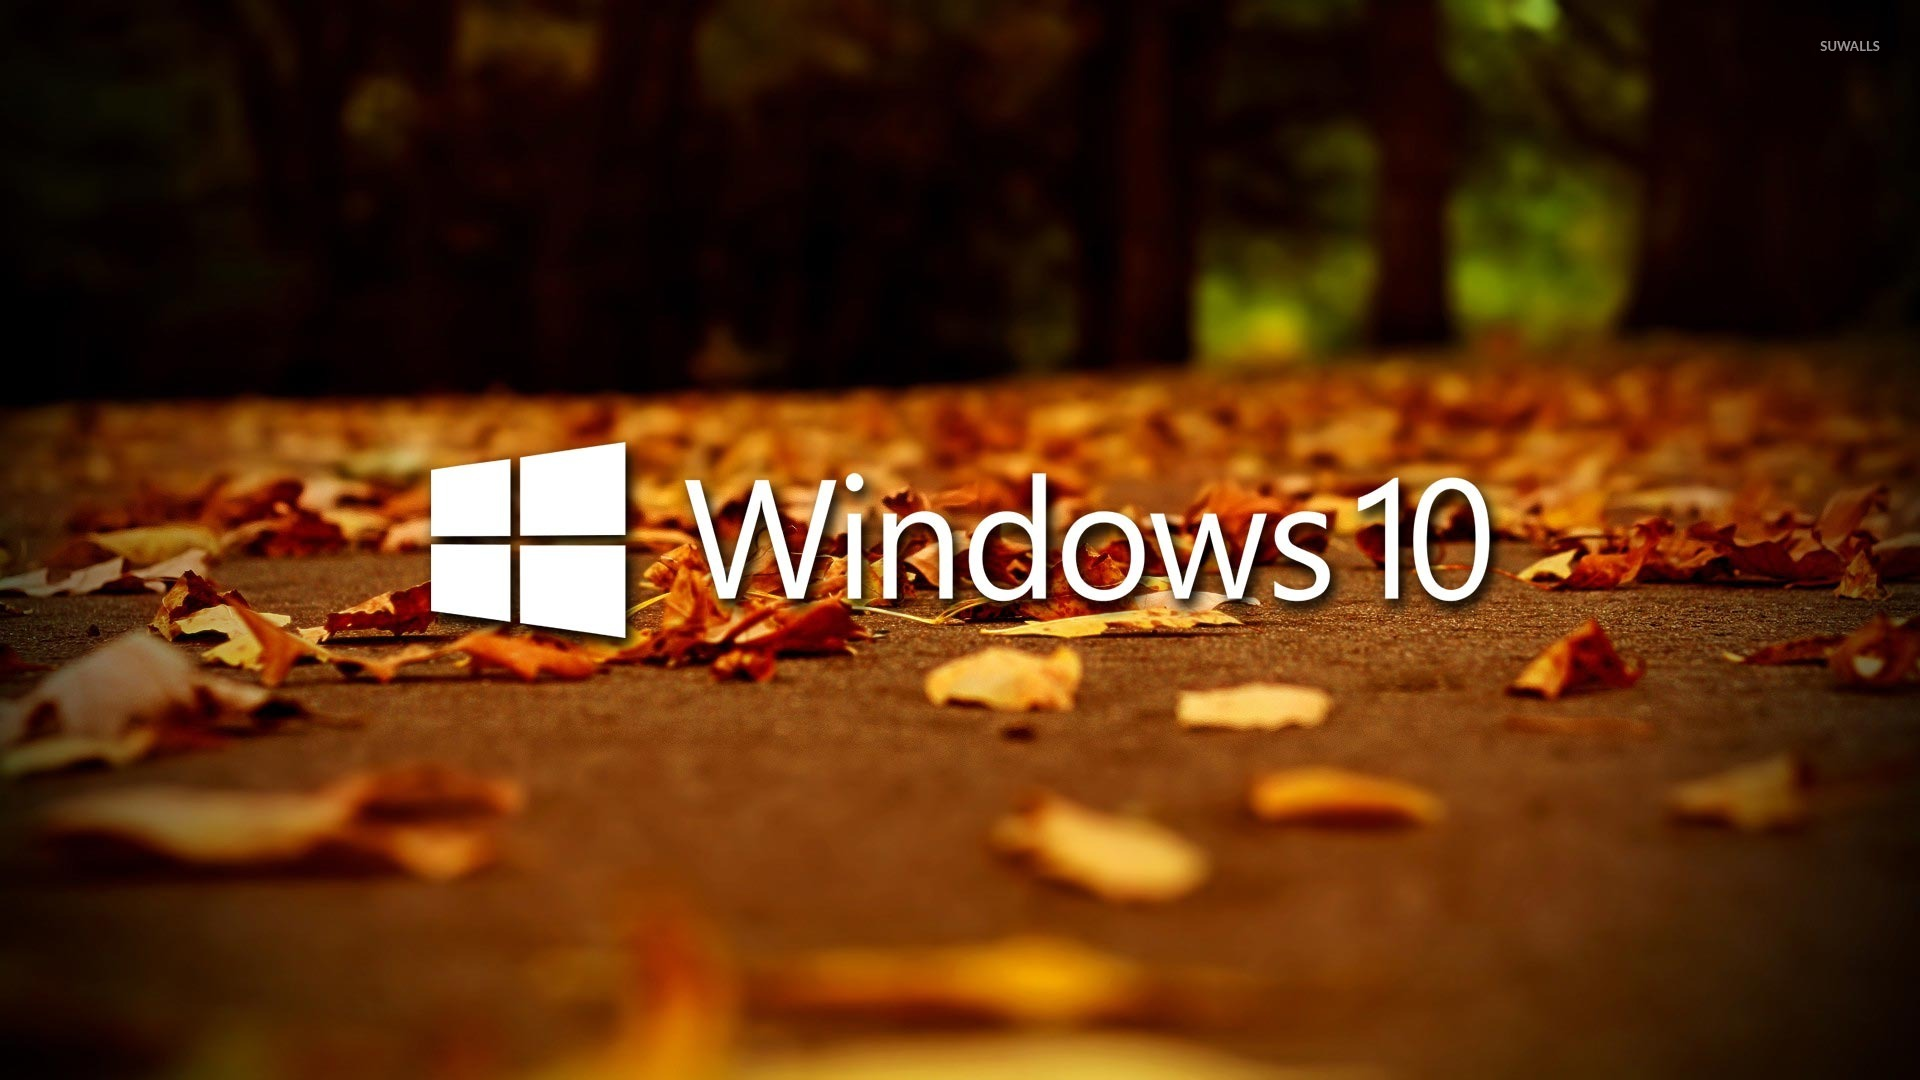 4k Laptop Wallpaper Fall Forest Windows 10 On Autumn Leaves 2 Wallpaper Computer